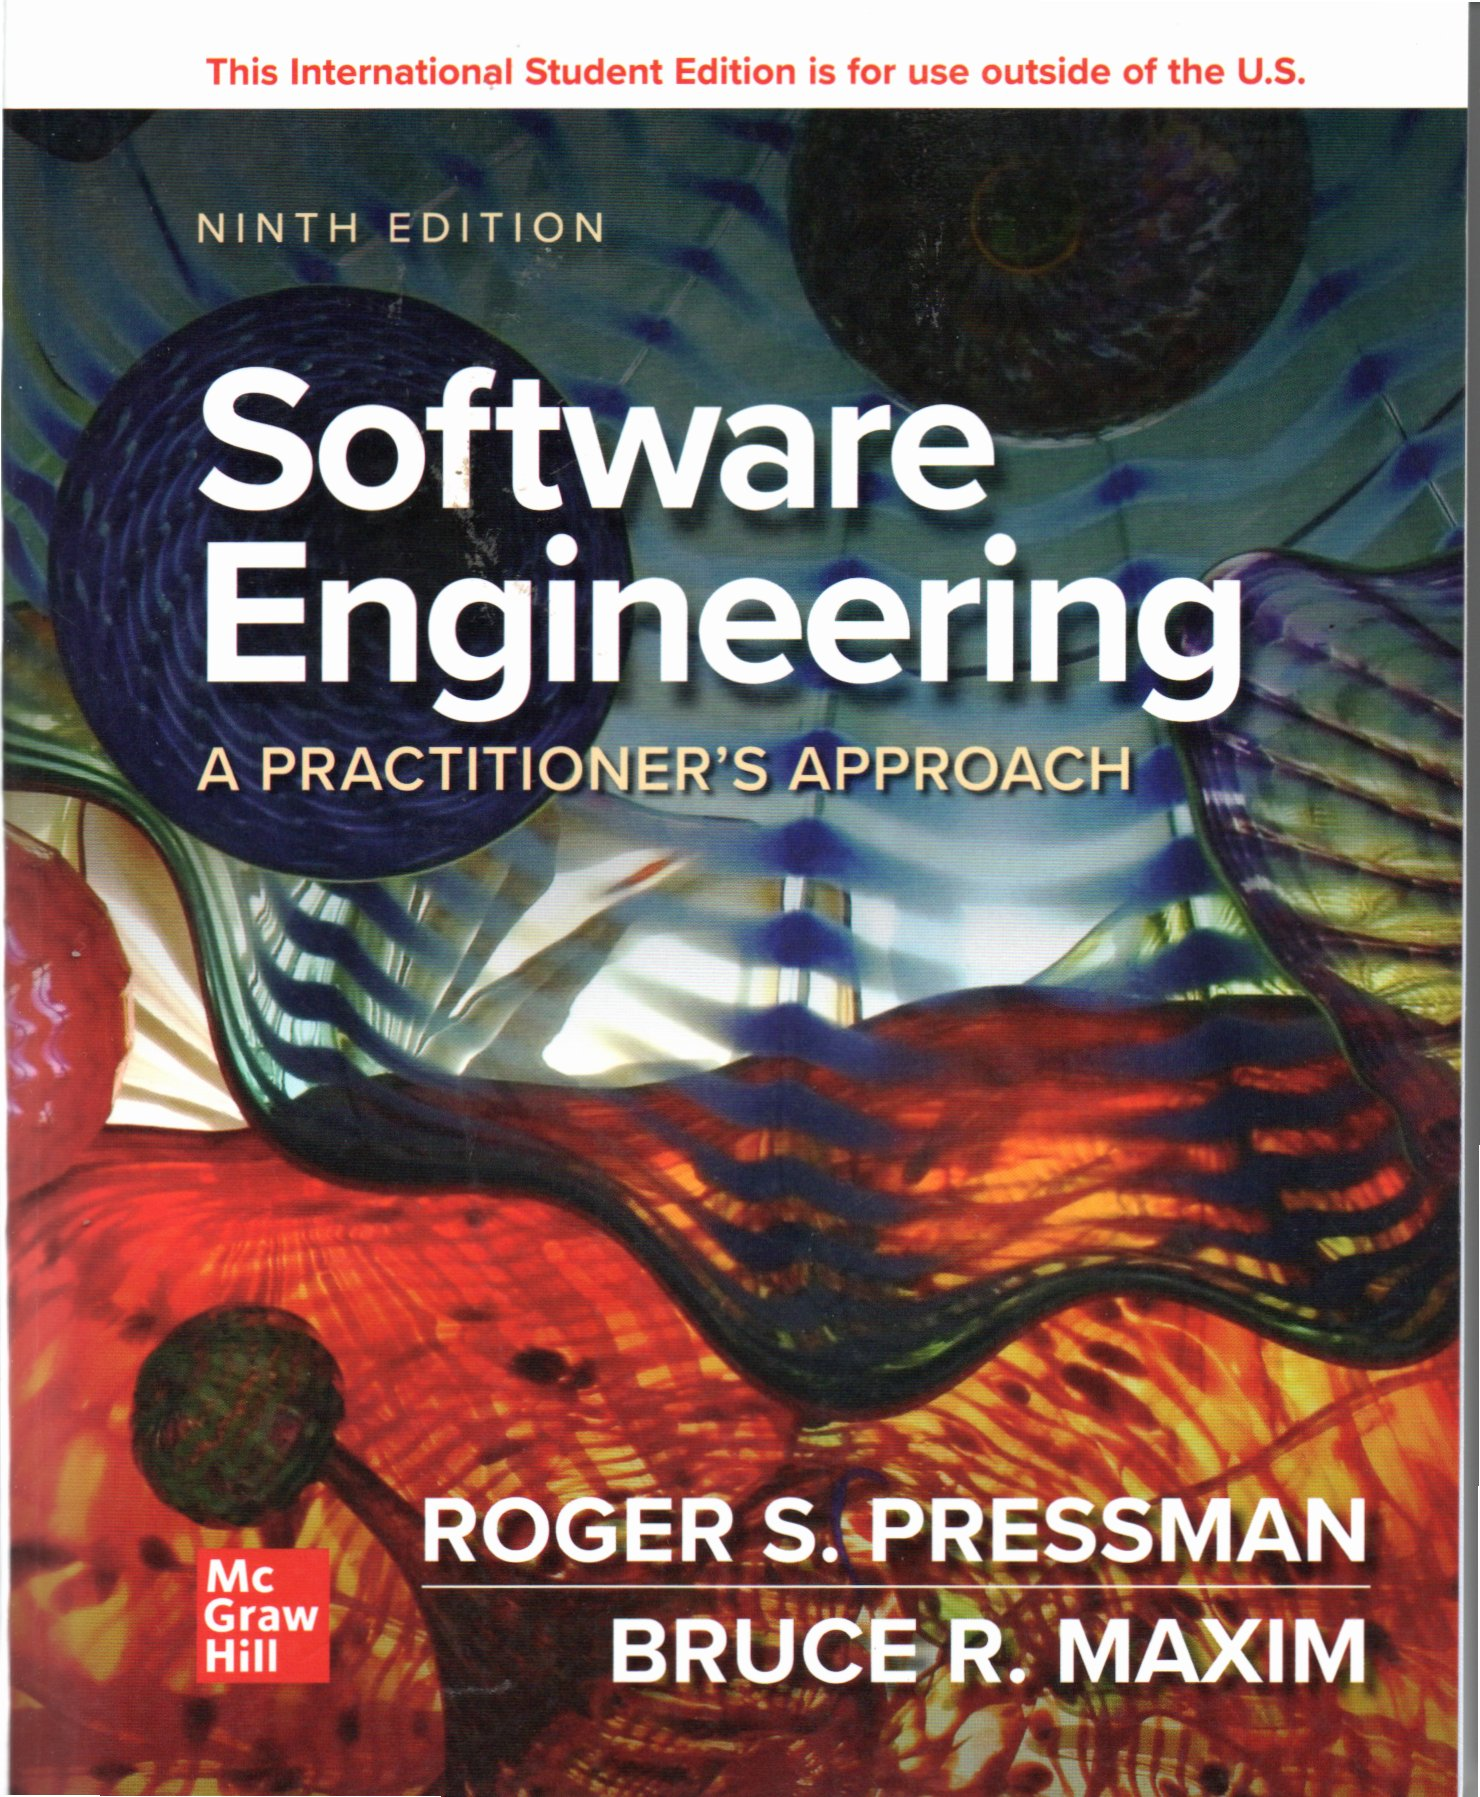 Software engineering a practitioner's approach  9ed / Roger S. Pressman